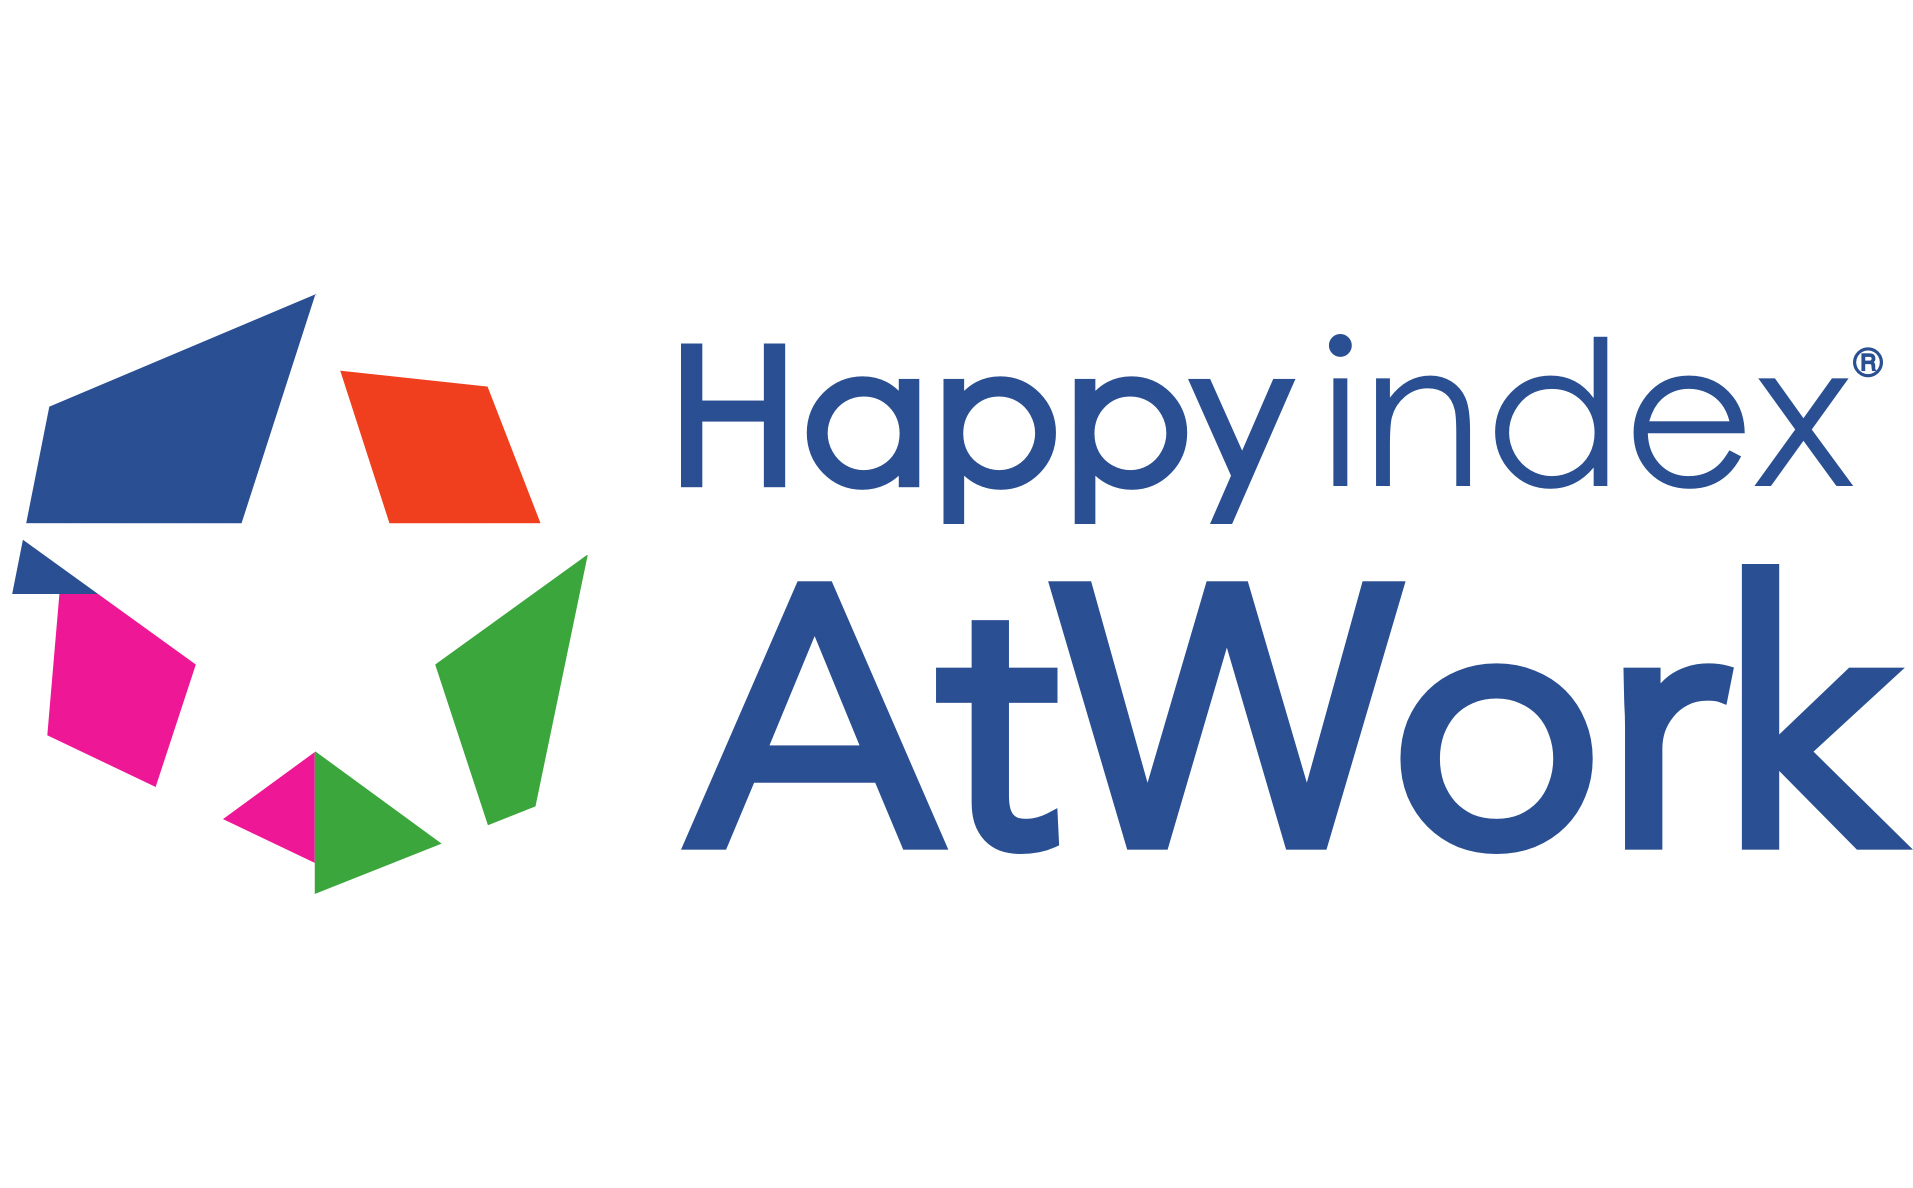 Netatmo gets the label HappyAtWork